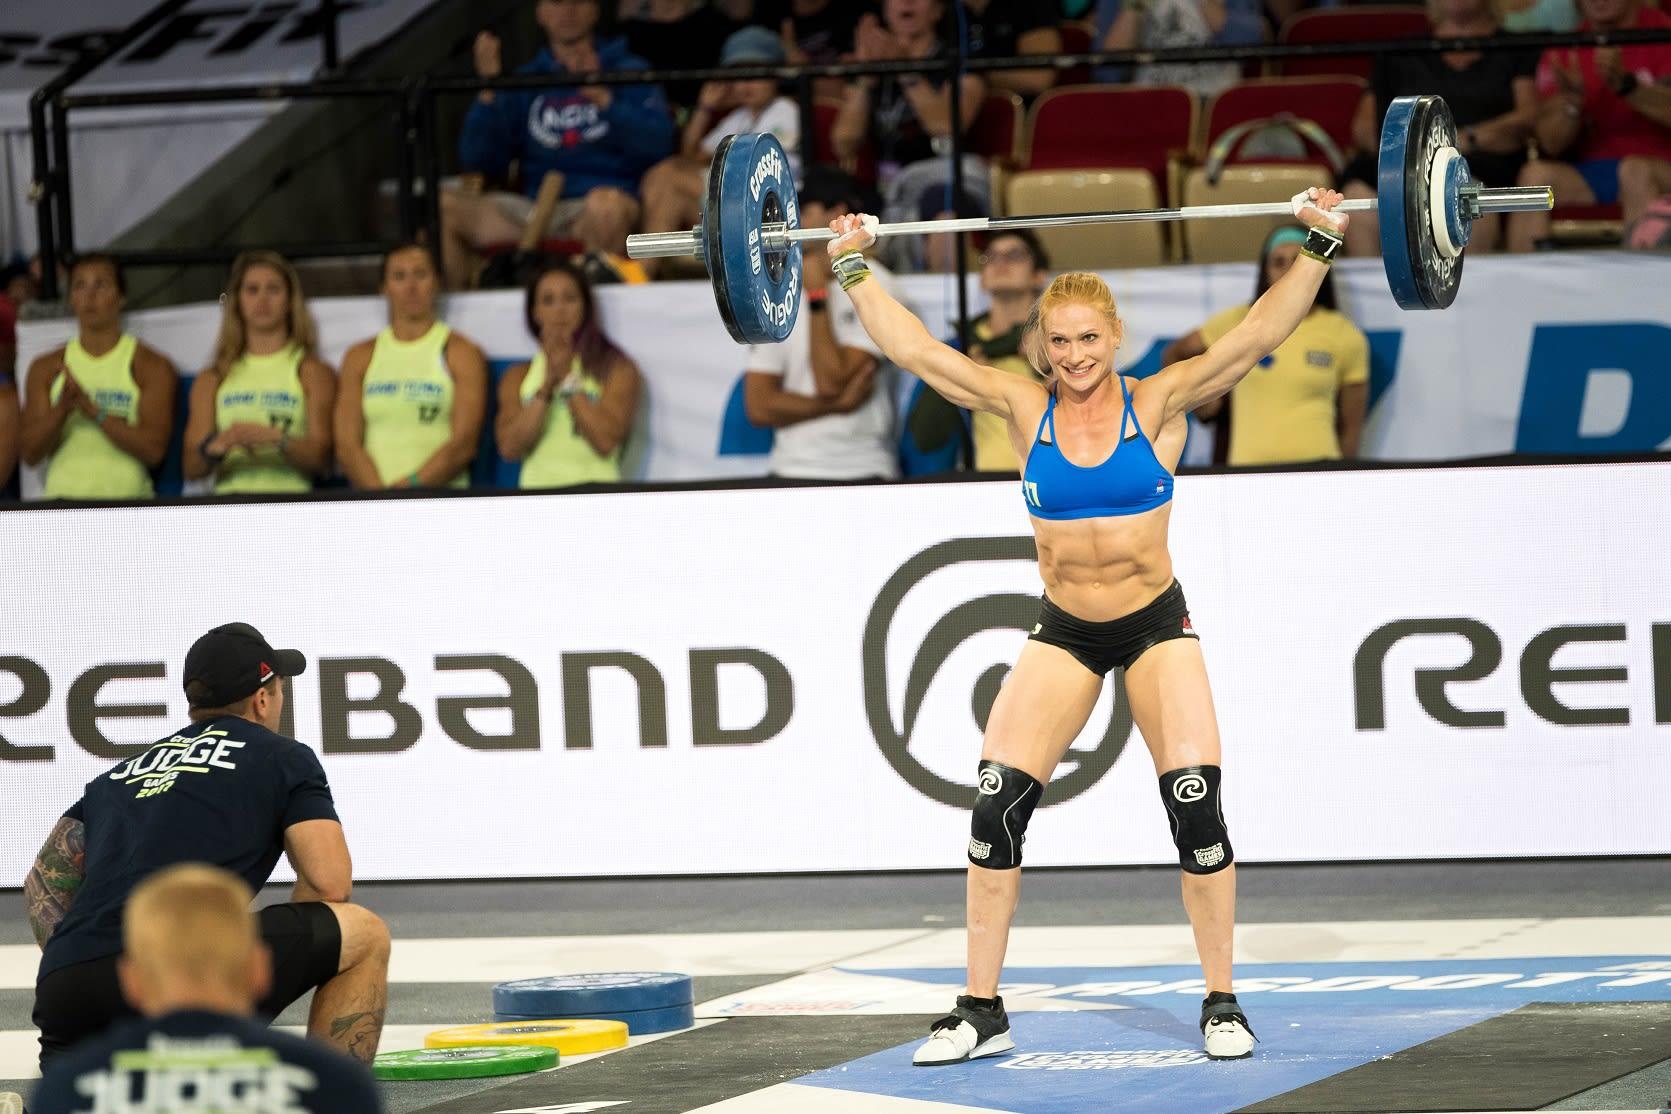 annie-thorisdottir-one-rep-max